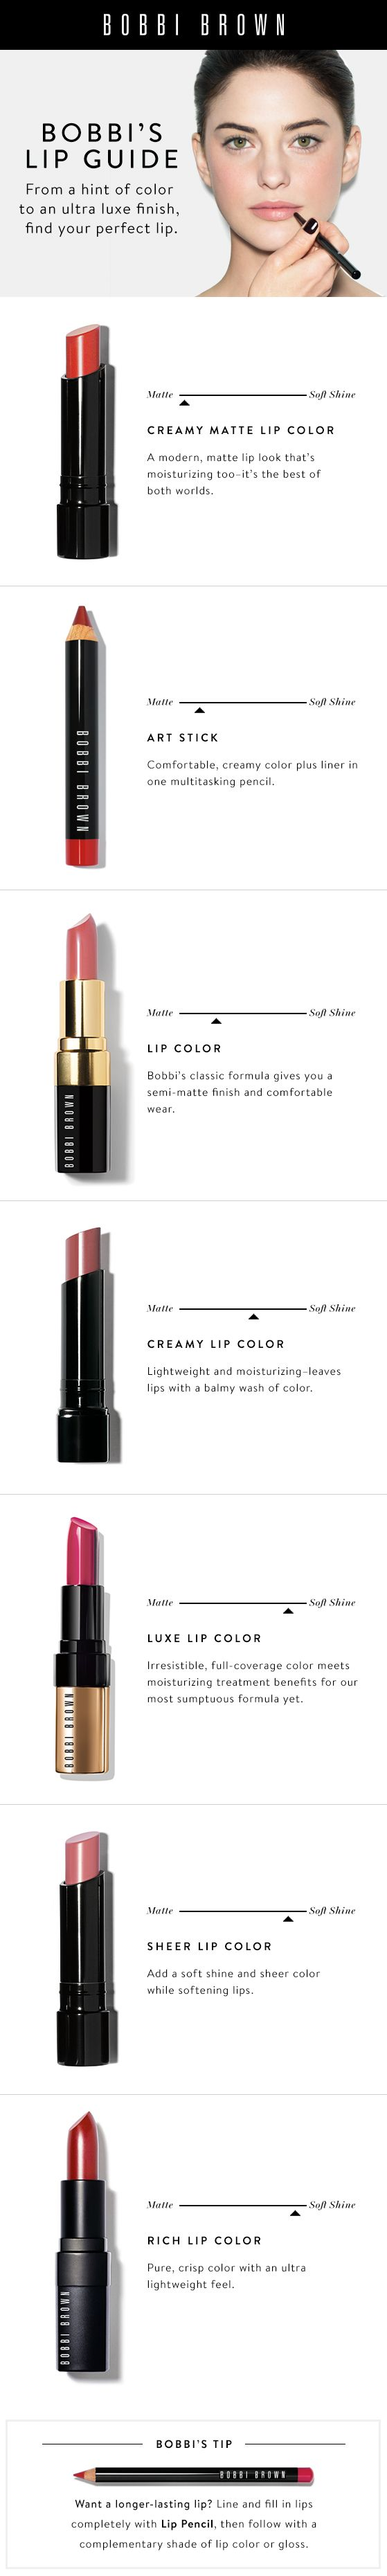 Pout Perfect. It's Bobbi's Lip Color Guide.